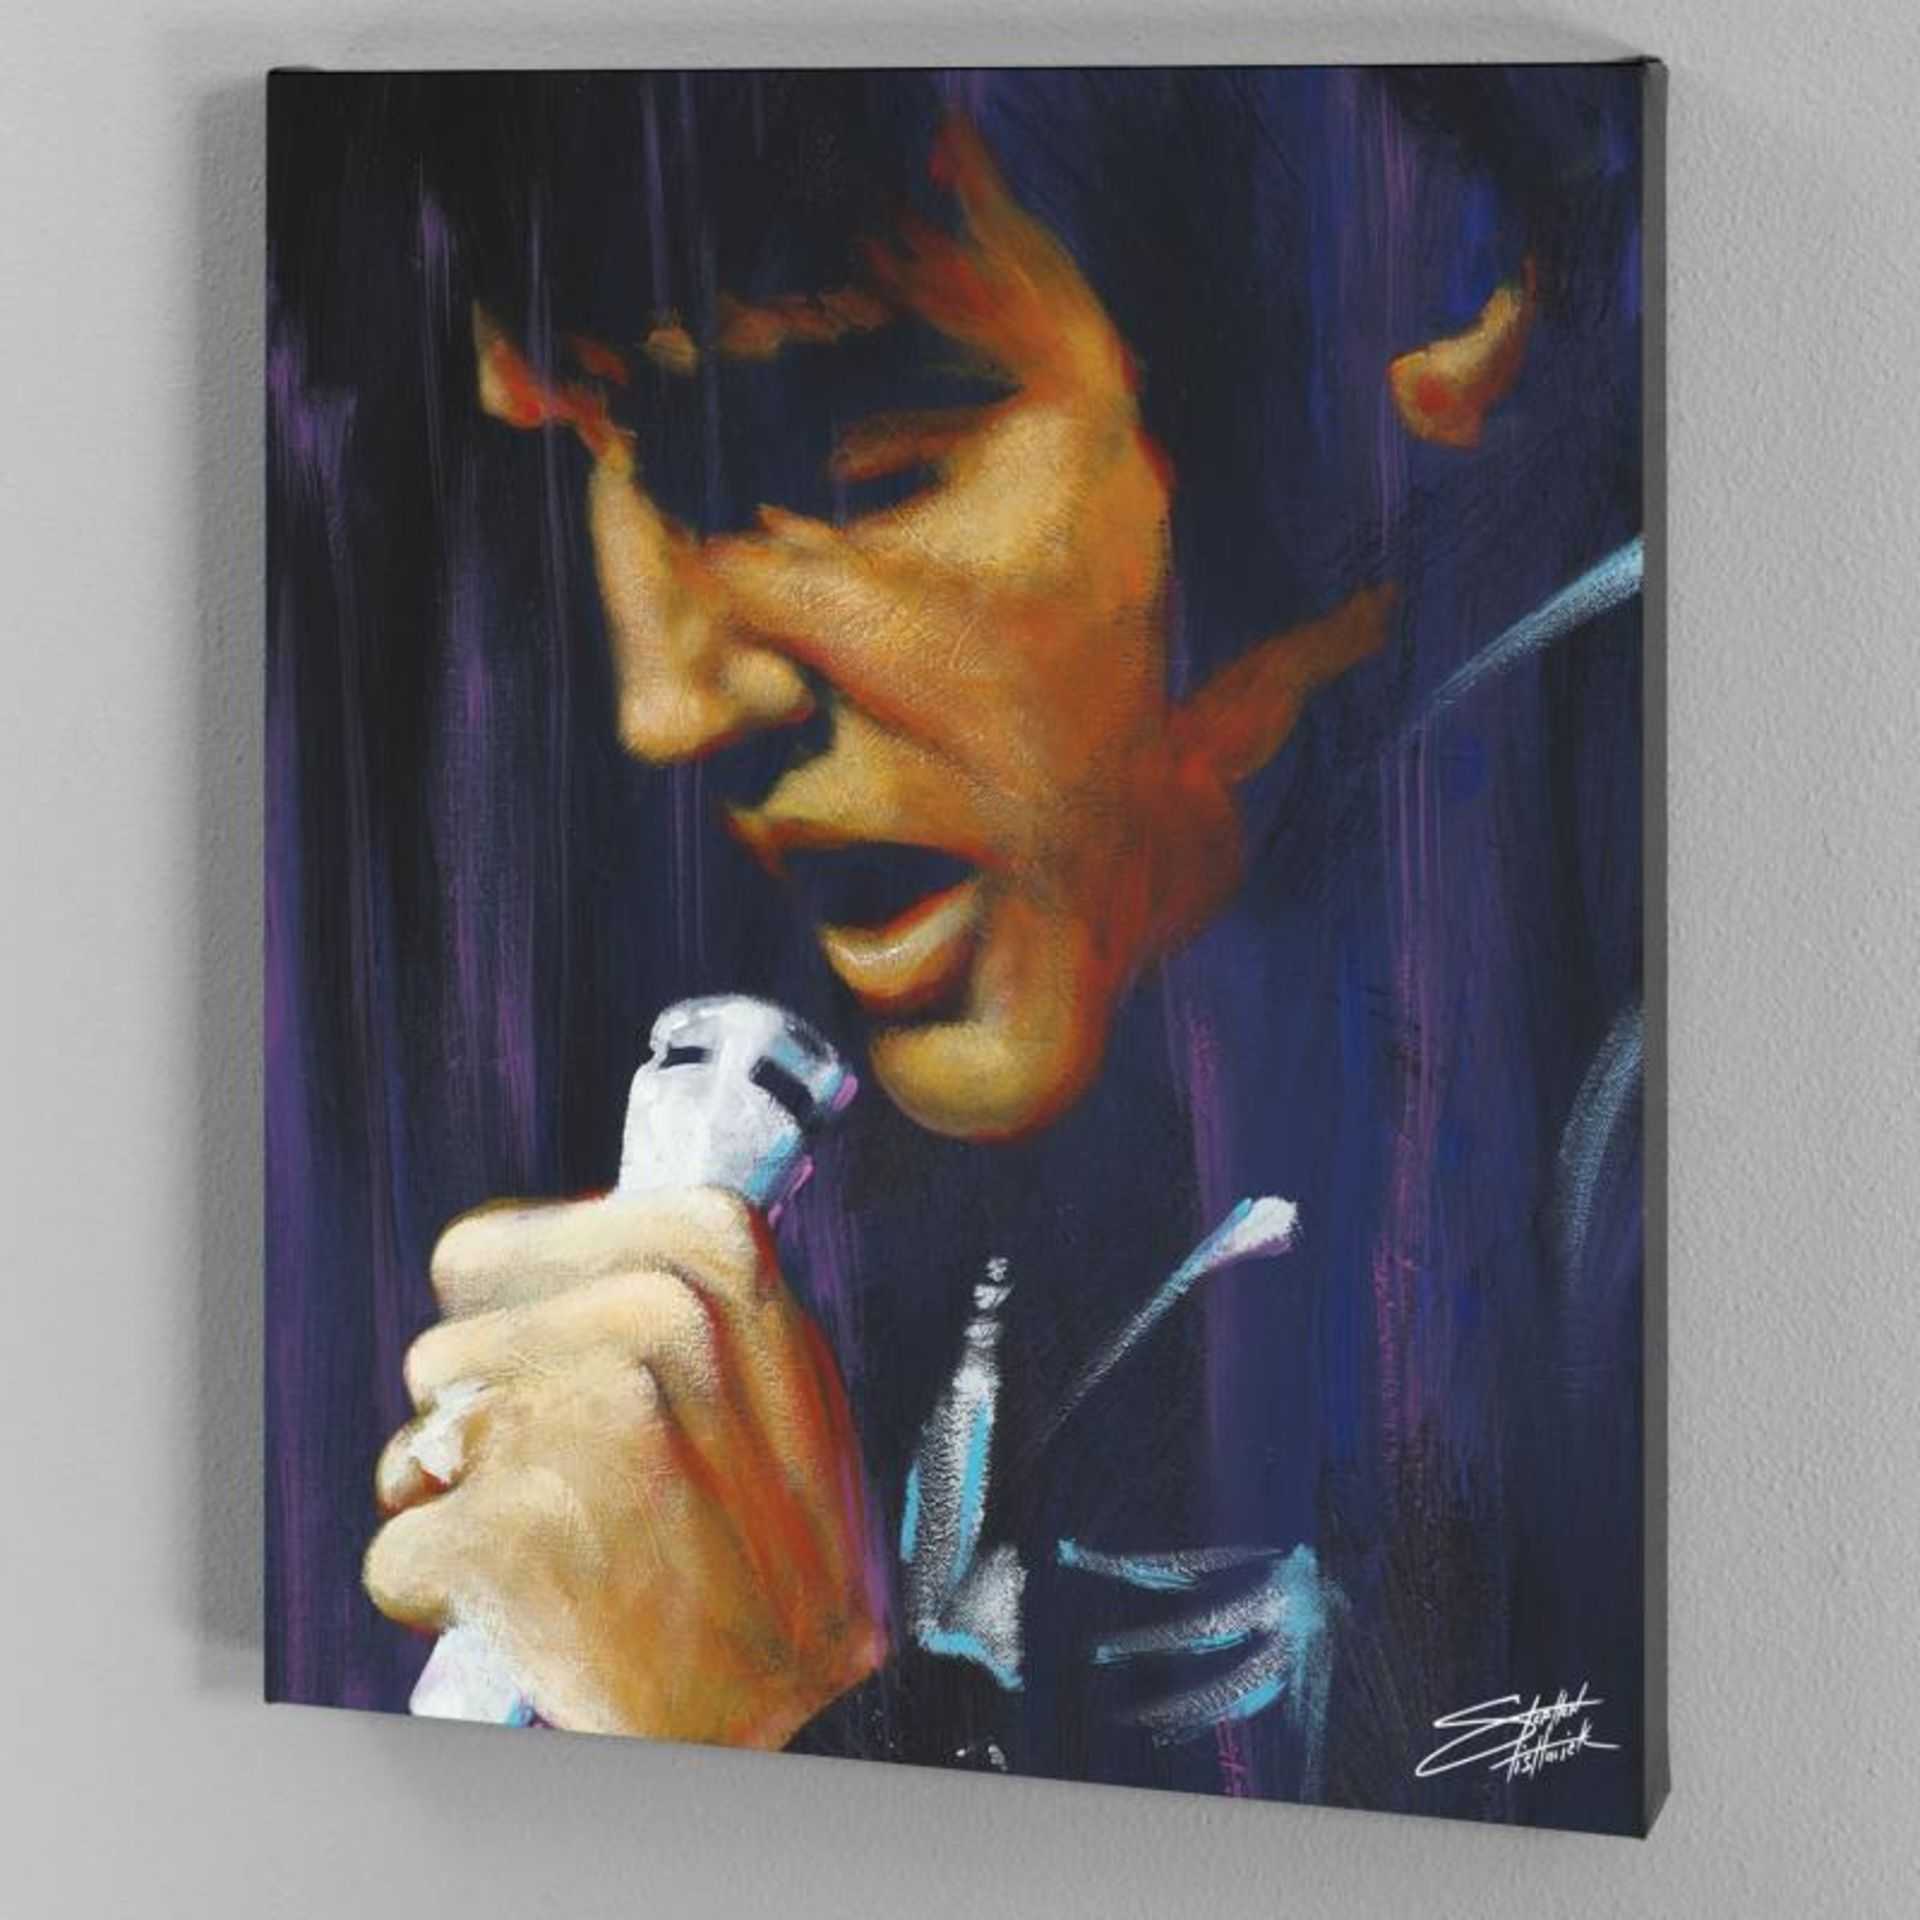 """""""I Dream"""" Limited Edition Giclee on Canvas by Stephen Fishwick, Numbered and Sig - Image 3 of 3"""